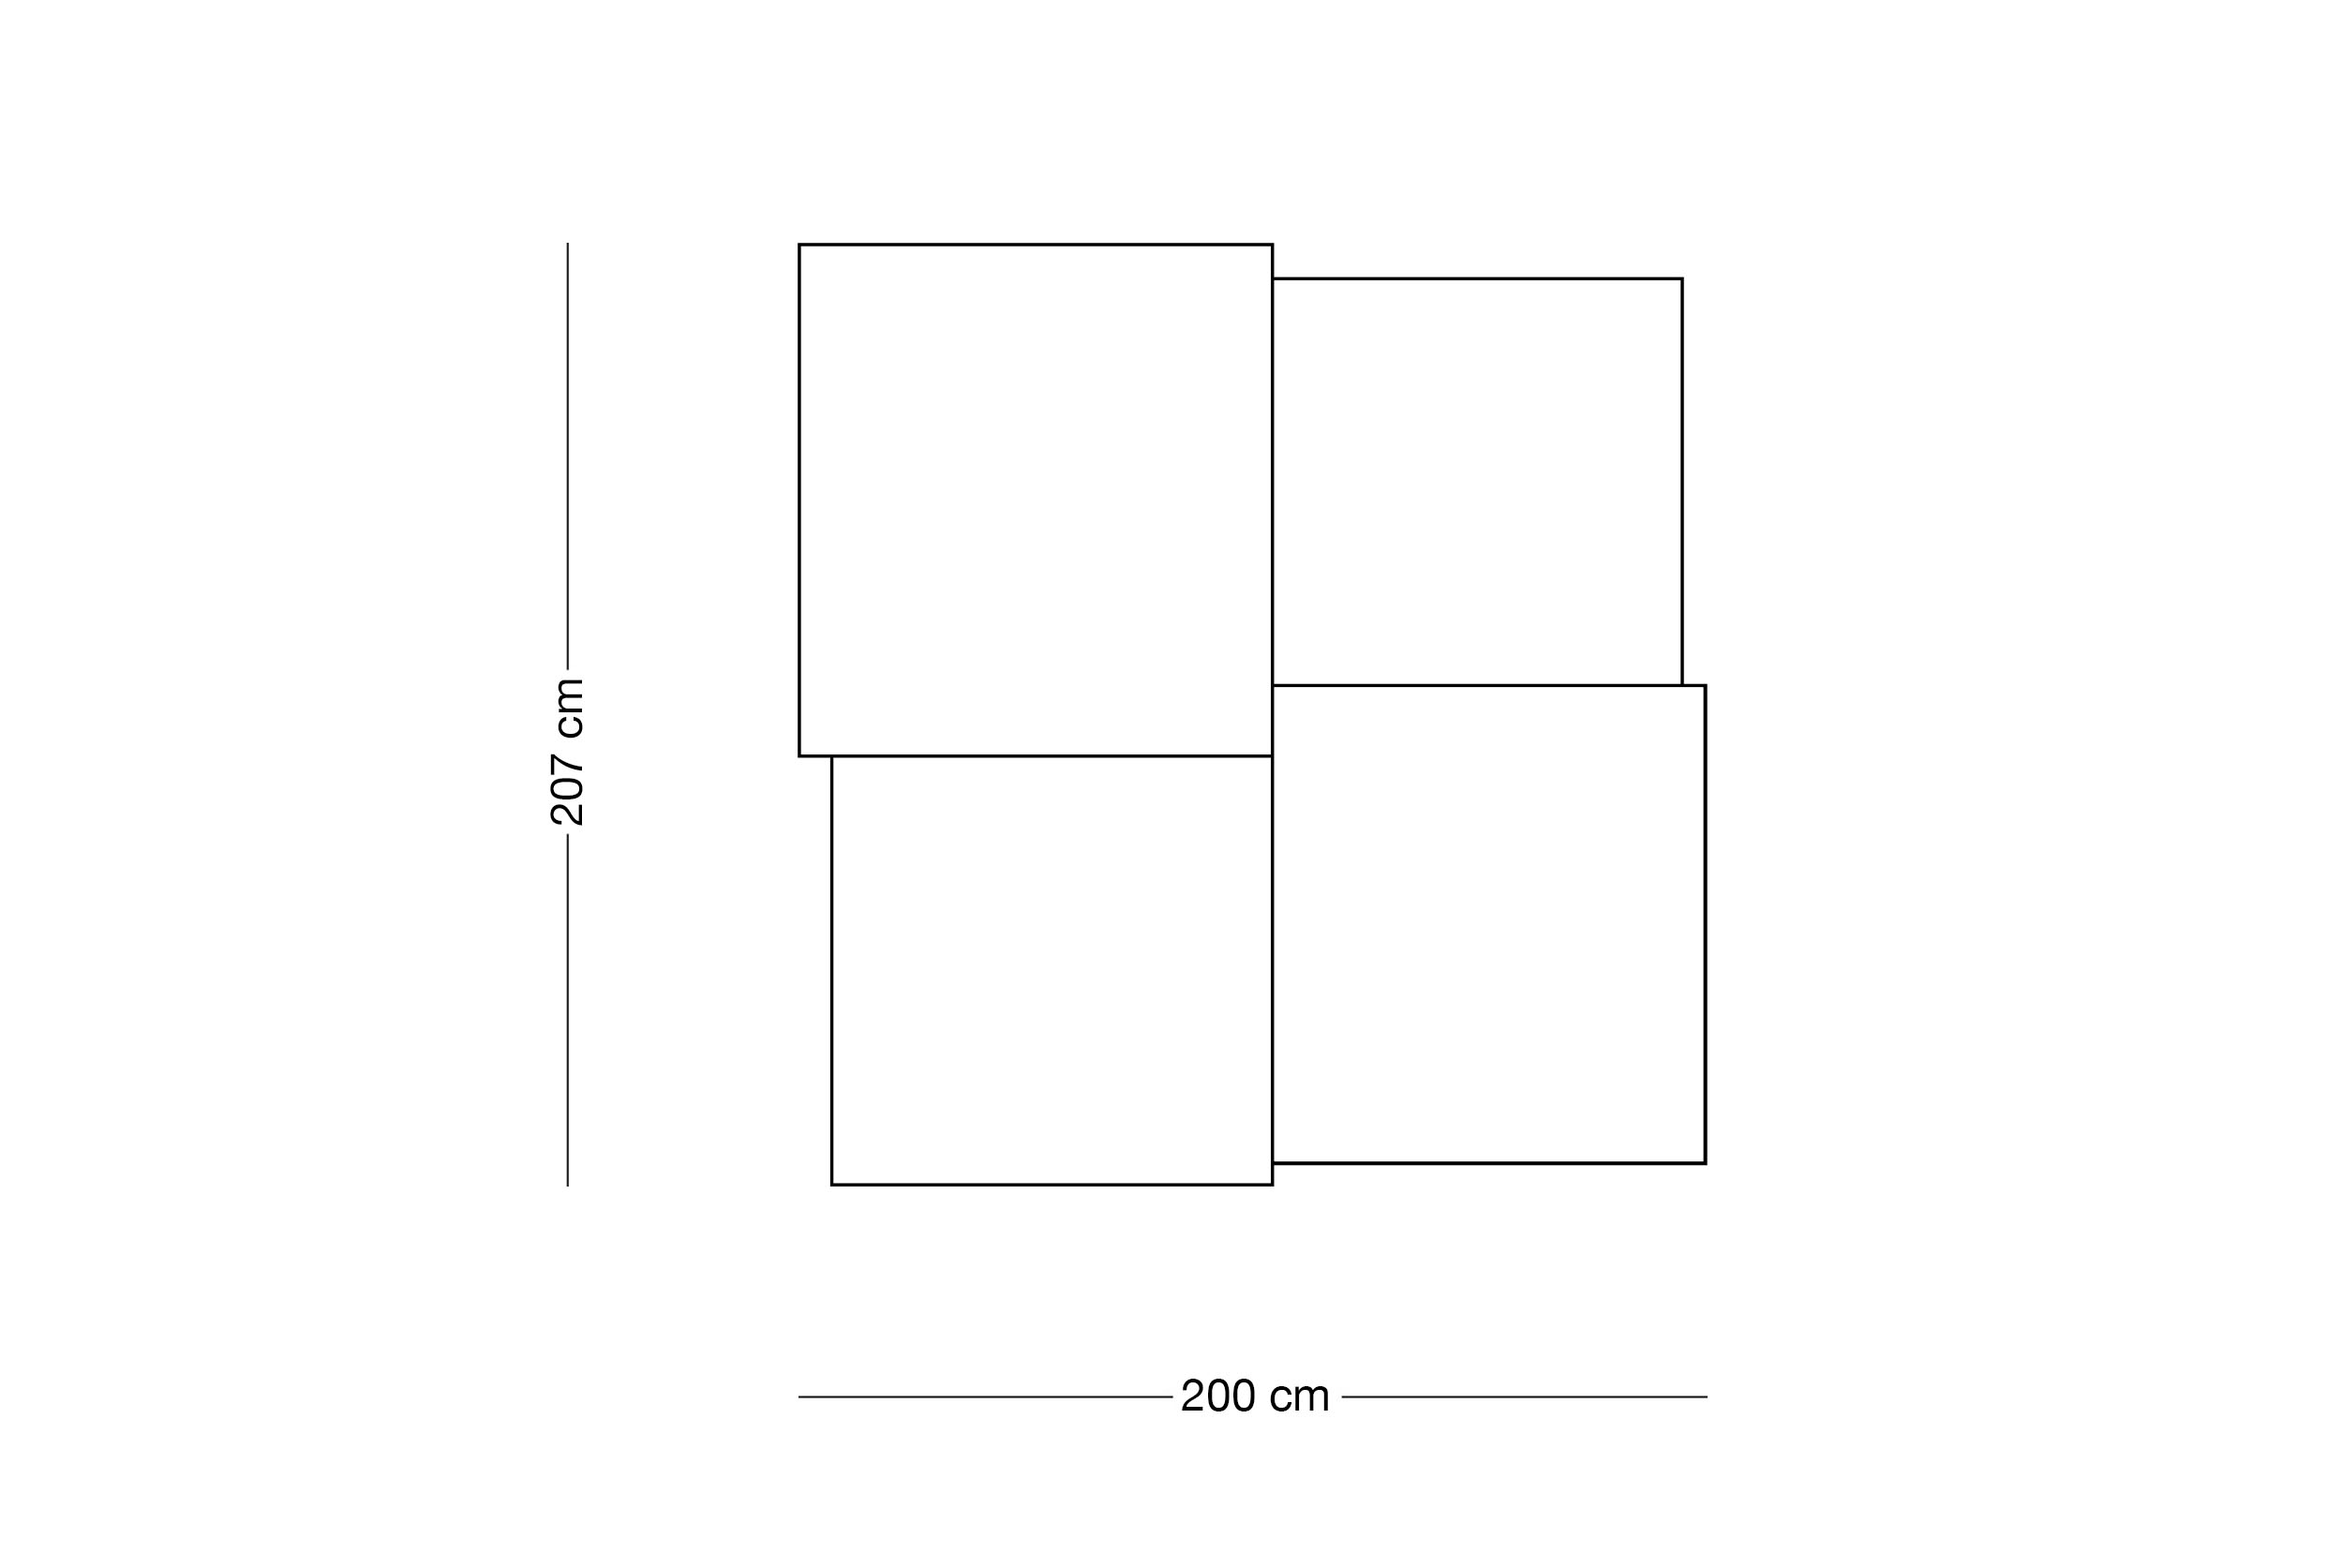 Over_Square_Size_2.jpg